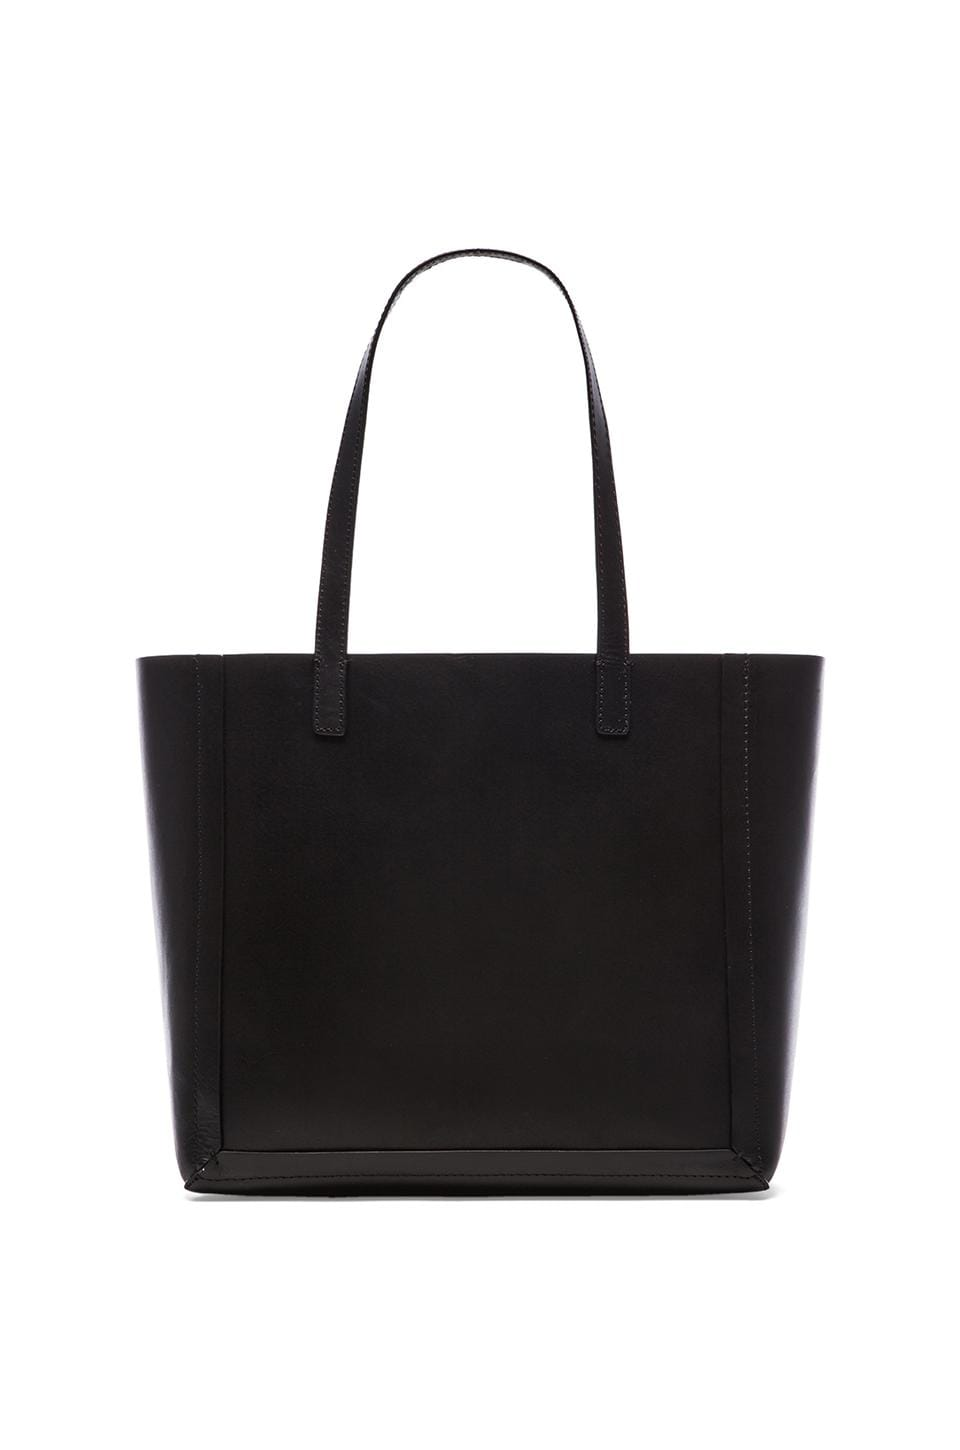 Loeffler Randall Open Tote in Black & White black